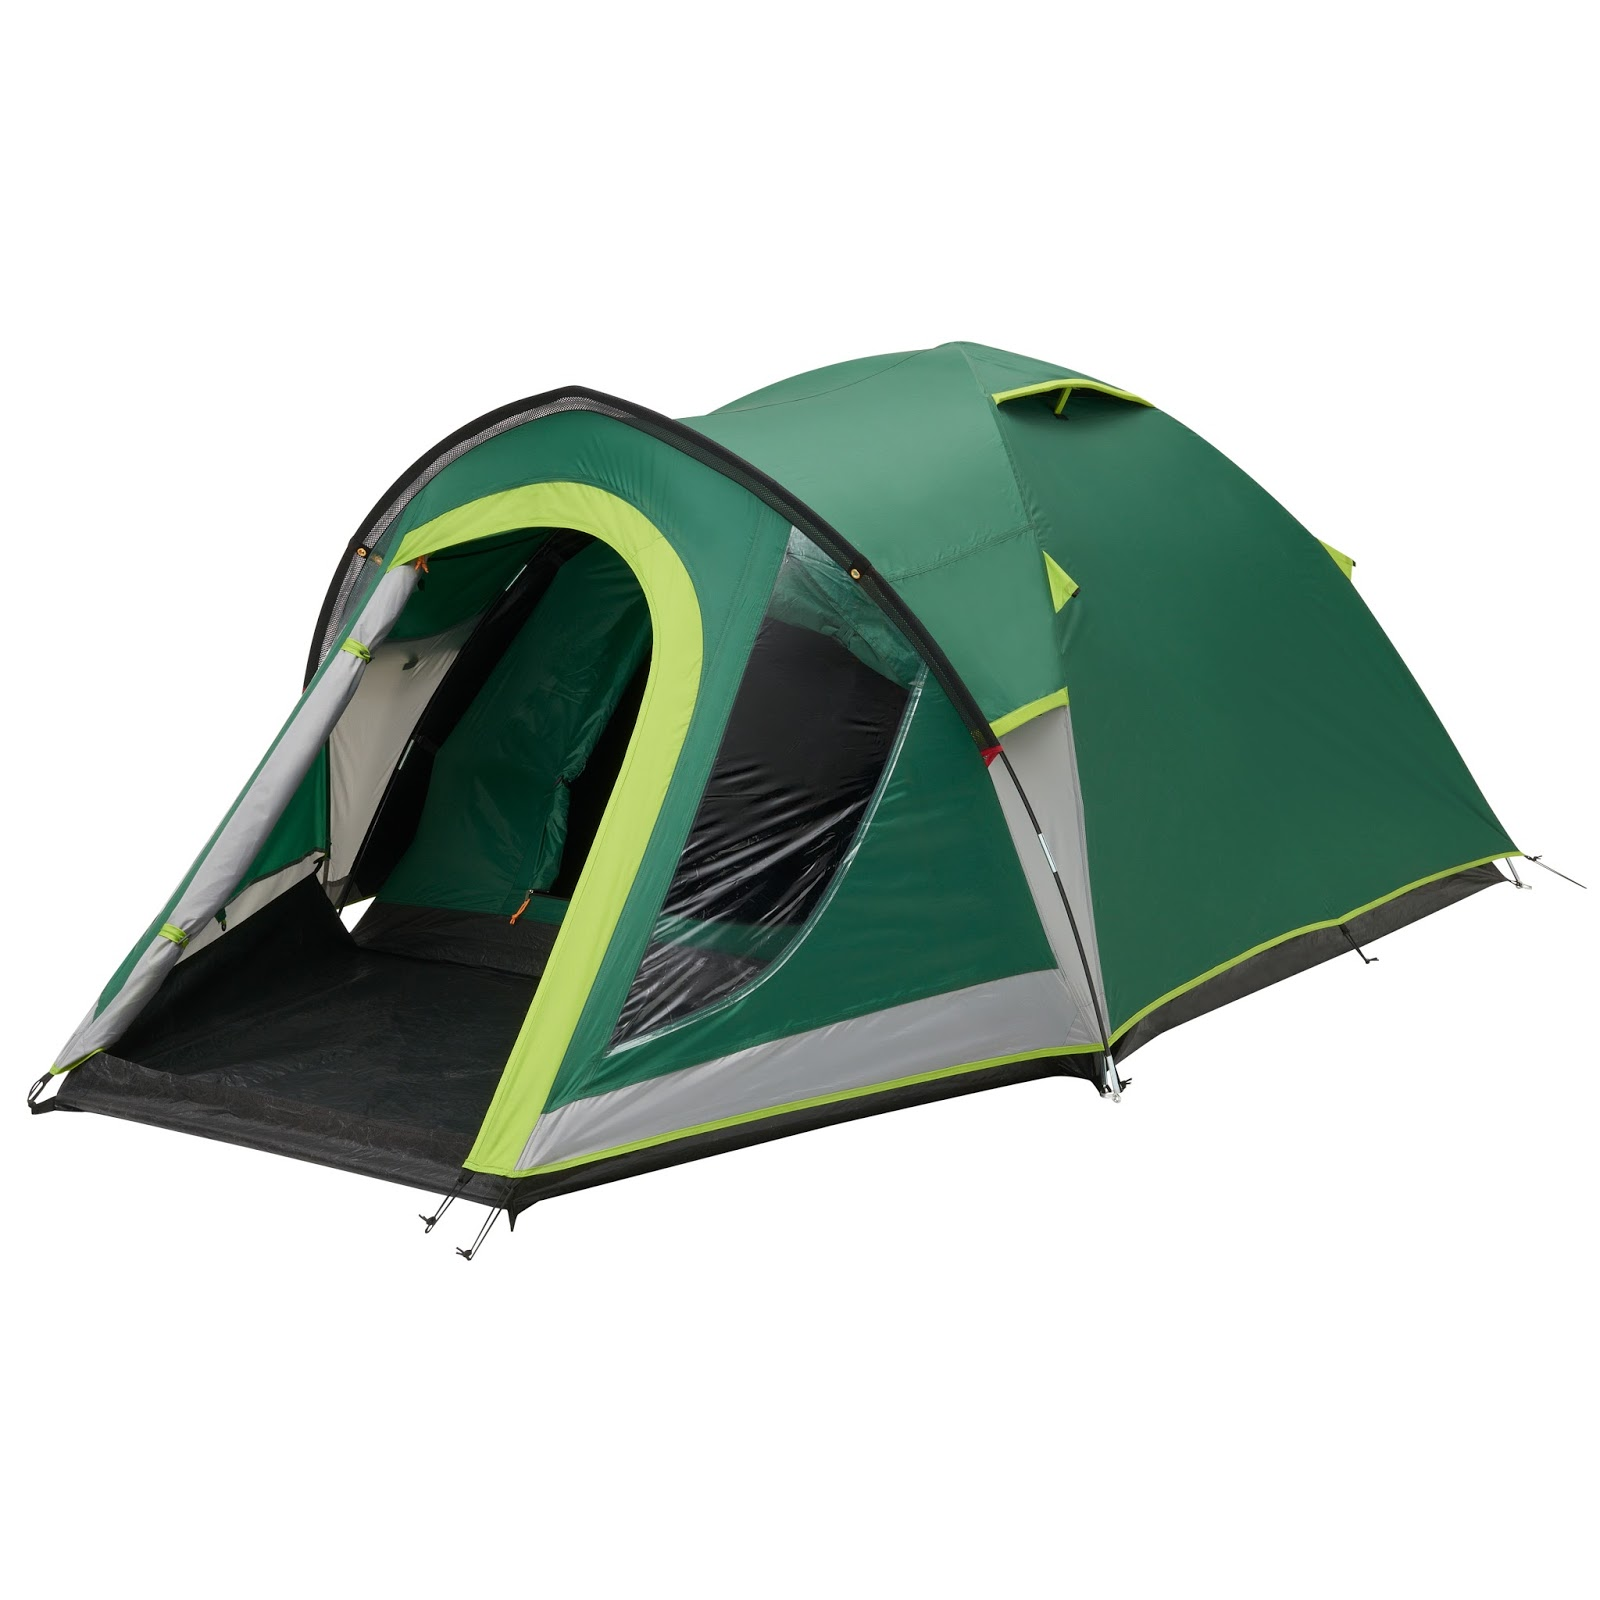 Last but by no means least ... the Coleman Kobuk Valley range of Dome tents  available in 2  3 u0026 4 berths. Weu0027re confident that these dome Tents will be ...  sc 1 st  IBEX C&ing Blog & IBEX Camping Blog: Coleman Tents for 2017